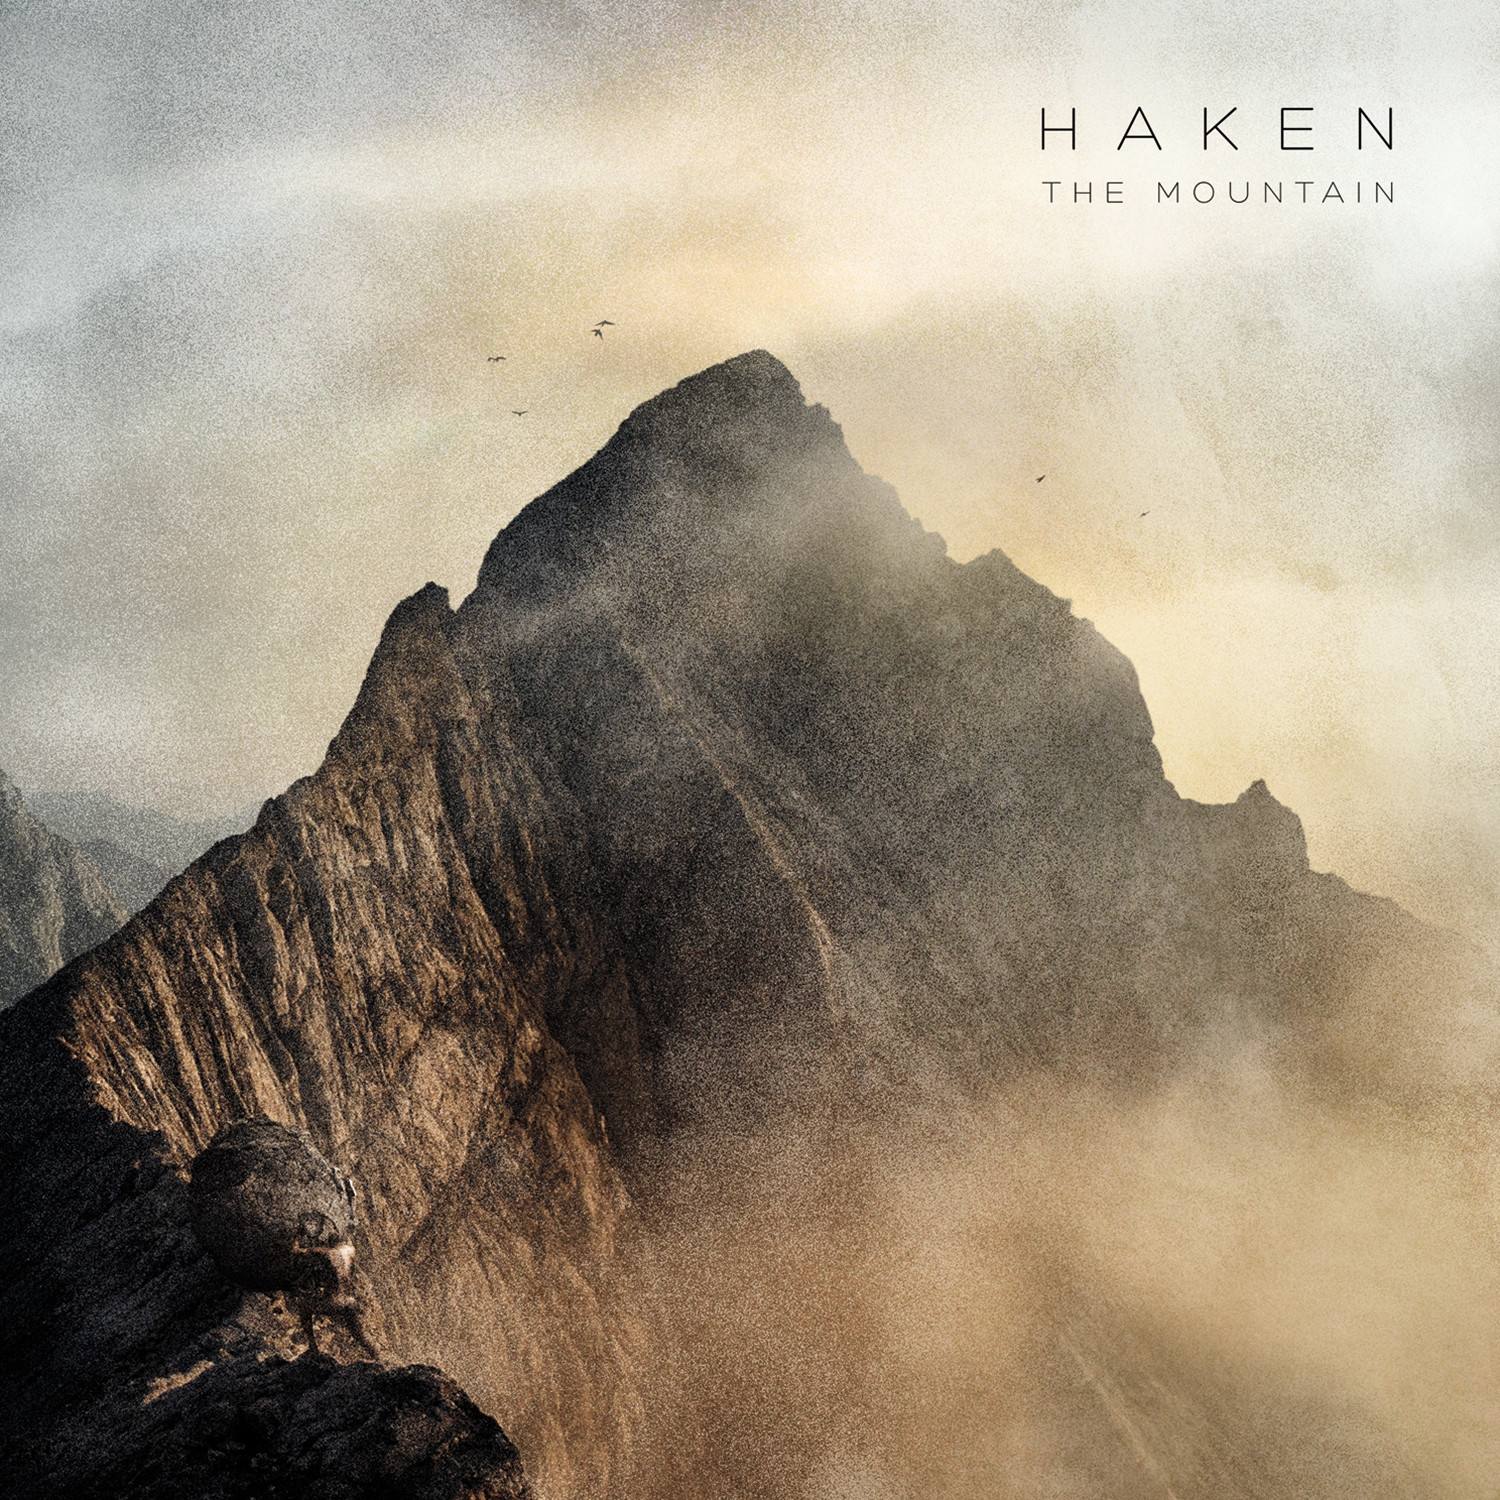 Haken – The Mountain CD Review